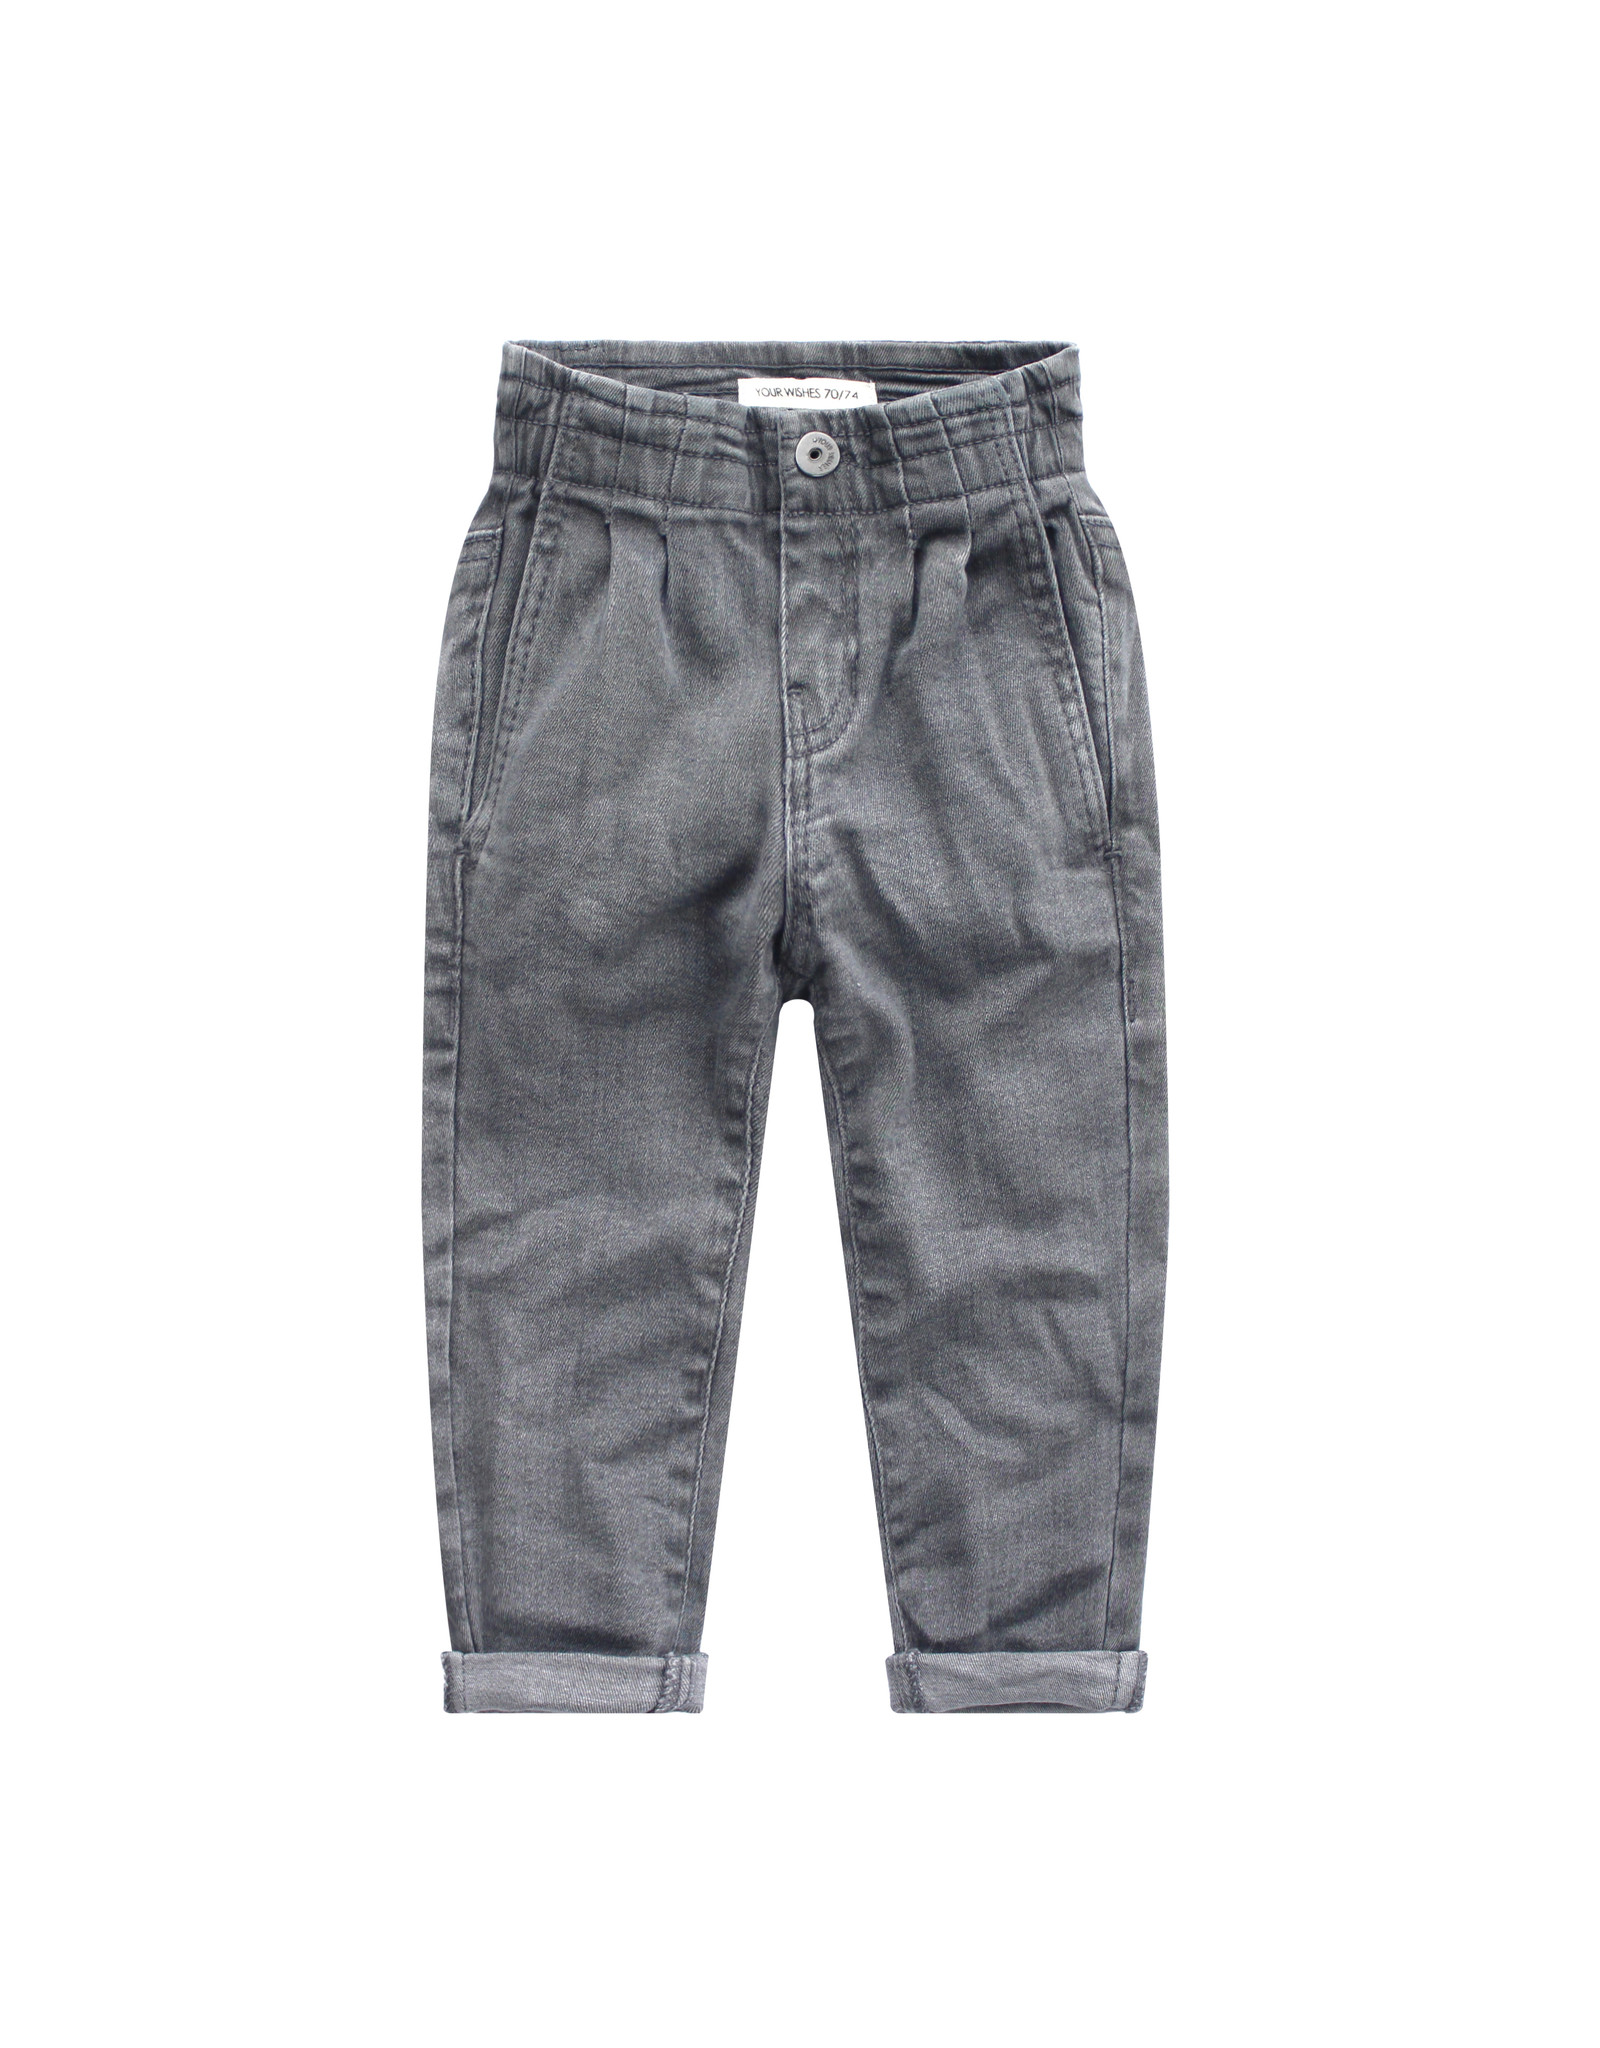 Your Wishes Denim | Paperbag Jeans